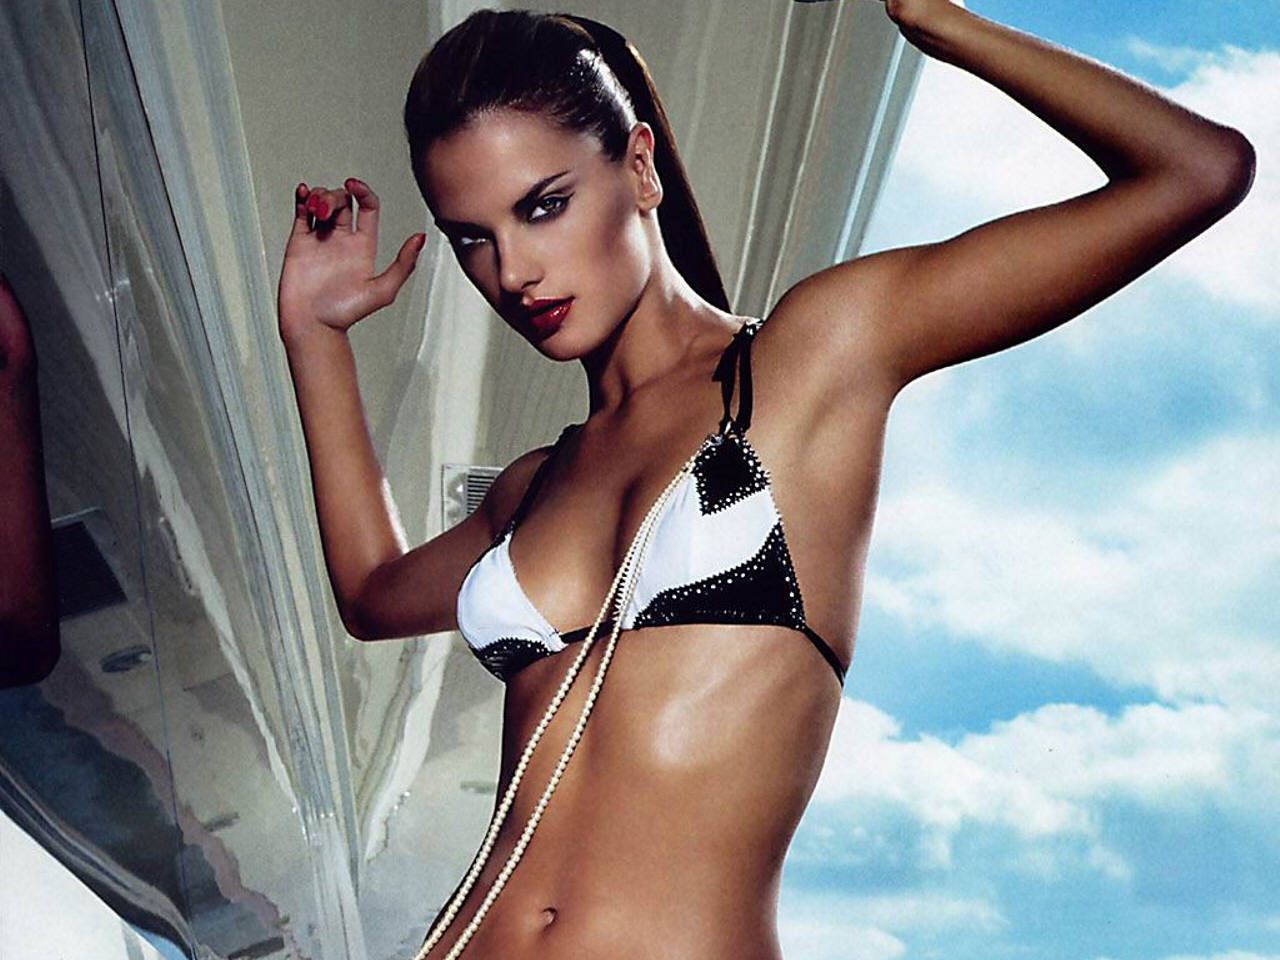 Alessandra Ambrosio Hot Bikini Modeling - Alessandra Ambrosio Net Worth, Pics, Wallpapers, Career and Biography